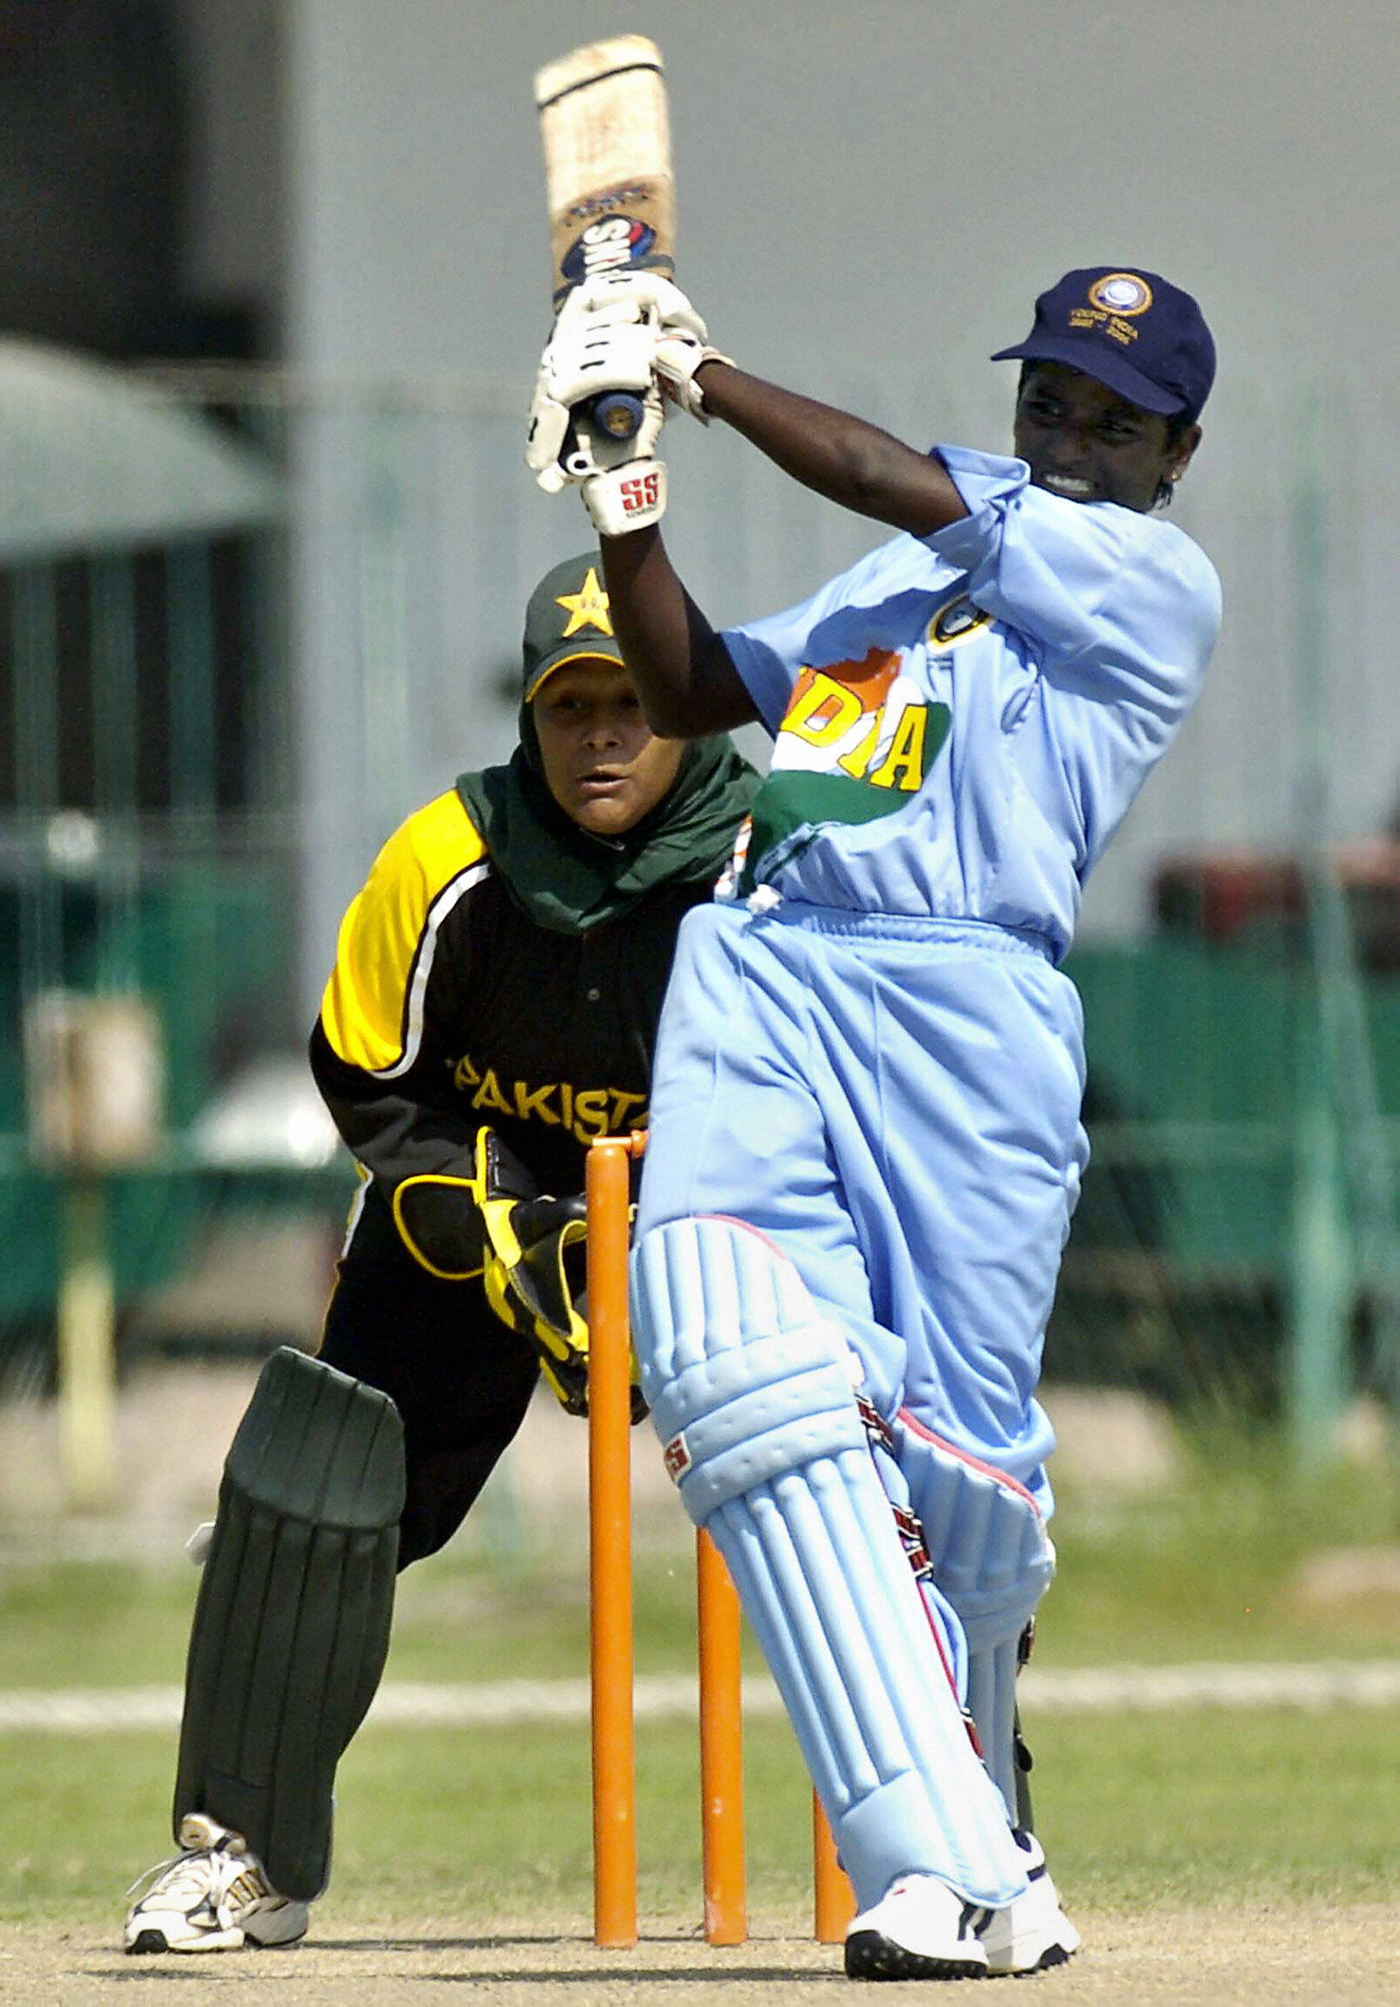 Fifteen-year-old Thirush Kamini on her way to a half-century for India U-21 against Pakistan in Lahore, 2005